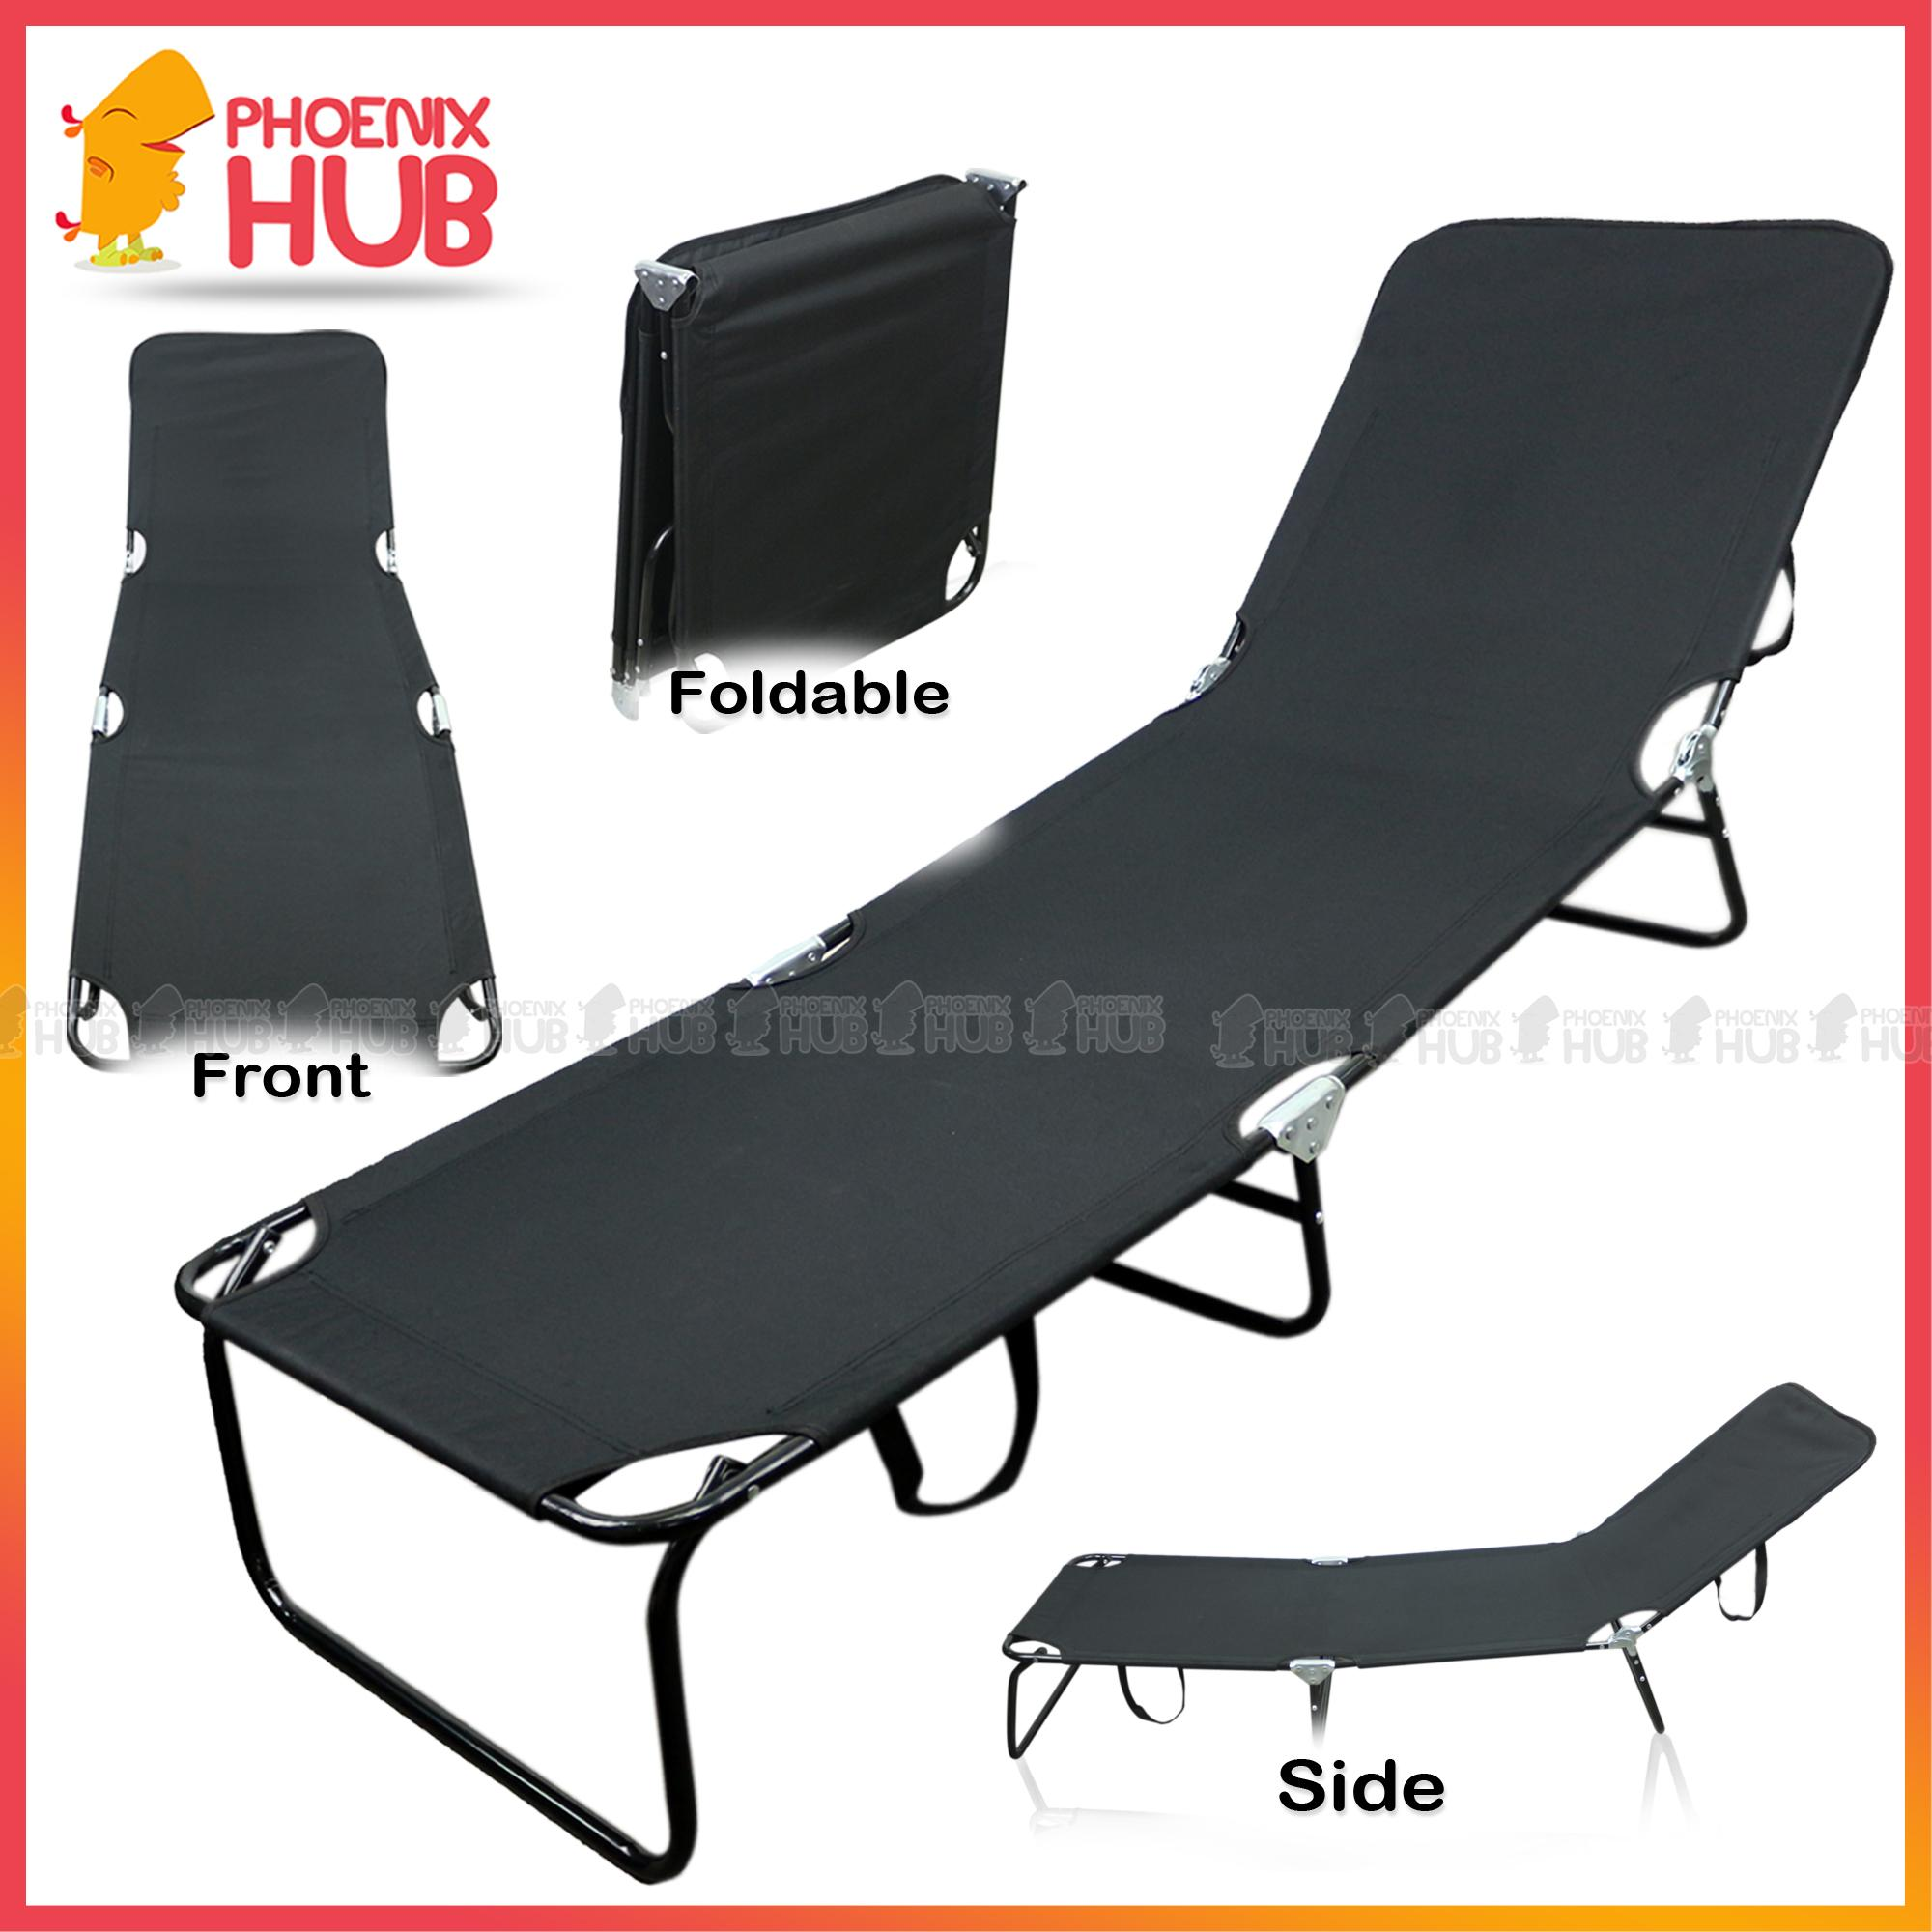 Foldable Bed Chair Phoenixhub Indoor Outdoor Lounge Chair Reclining Chair Full Sleeper Chair With Headrest Heavy Duty Multi Function Adjustable Portable Folding Bed